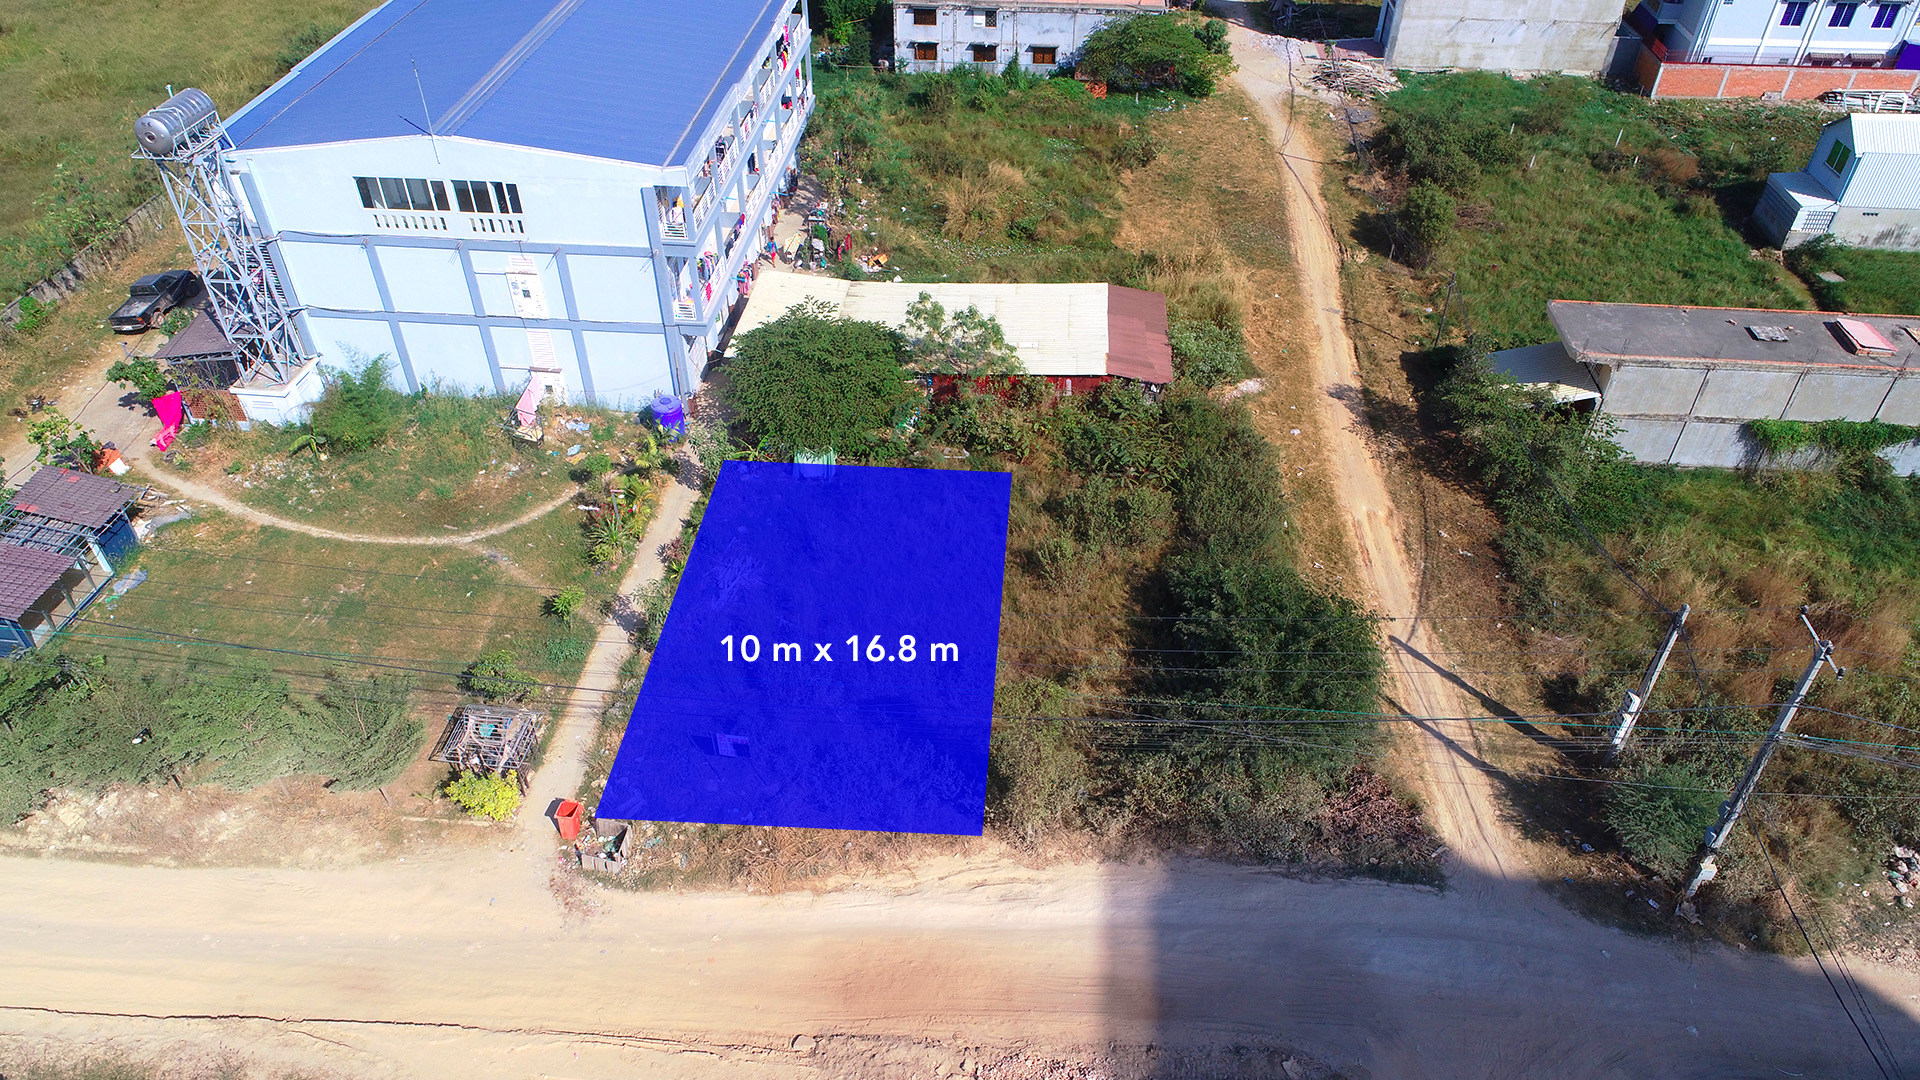 Land for sale very urgent in front of AEON and GLOBAL